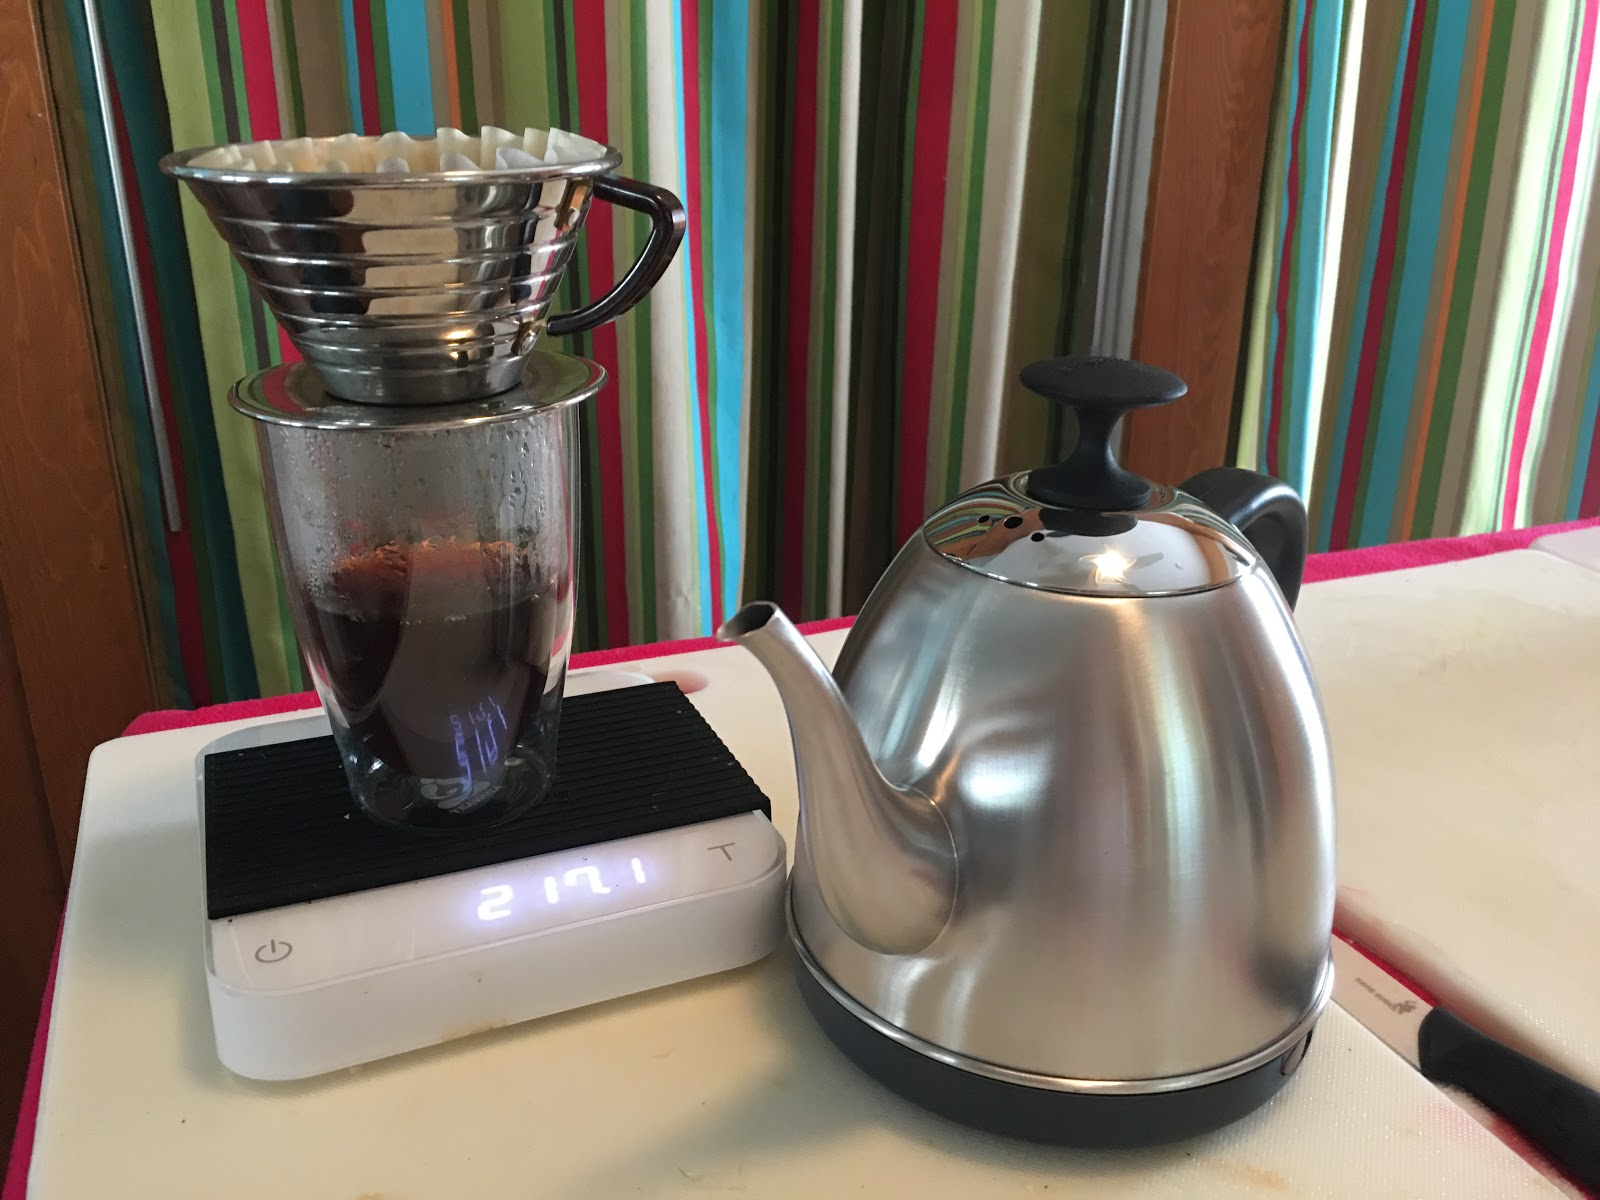 Houston Food Explorers 2018 Kalita Coffee Pot Kettle 16 L A New Option For Shopping Makers And Other Related Products Is Wish Dot Com The Stuff Really Cheap Your Purchases Mostly Ship From